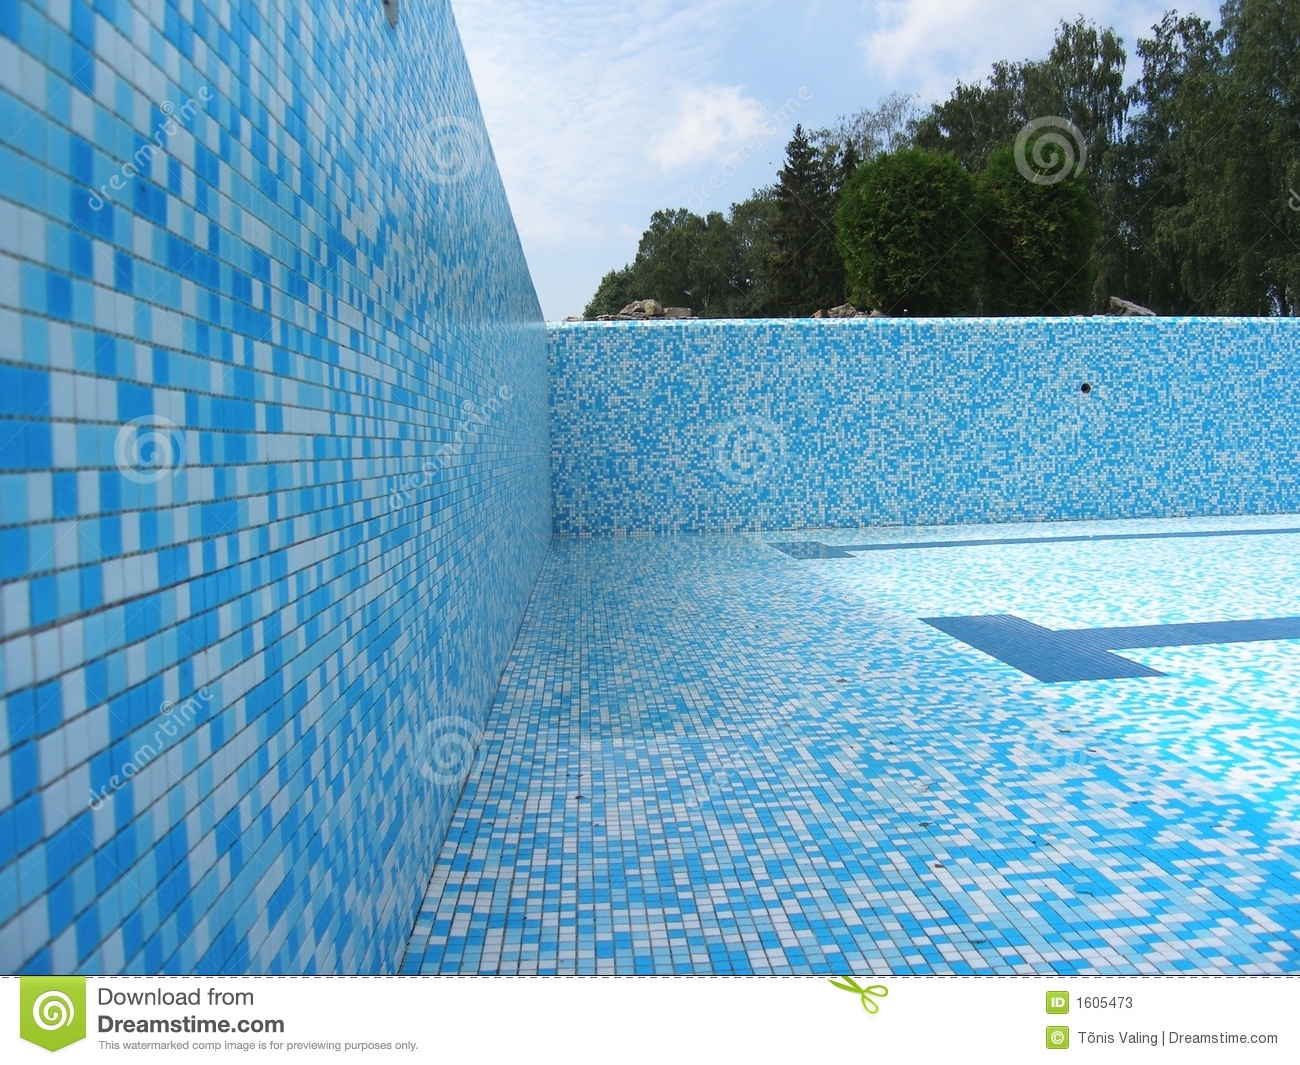 Swimming Pool Without Water Stock Photos Image 1605473